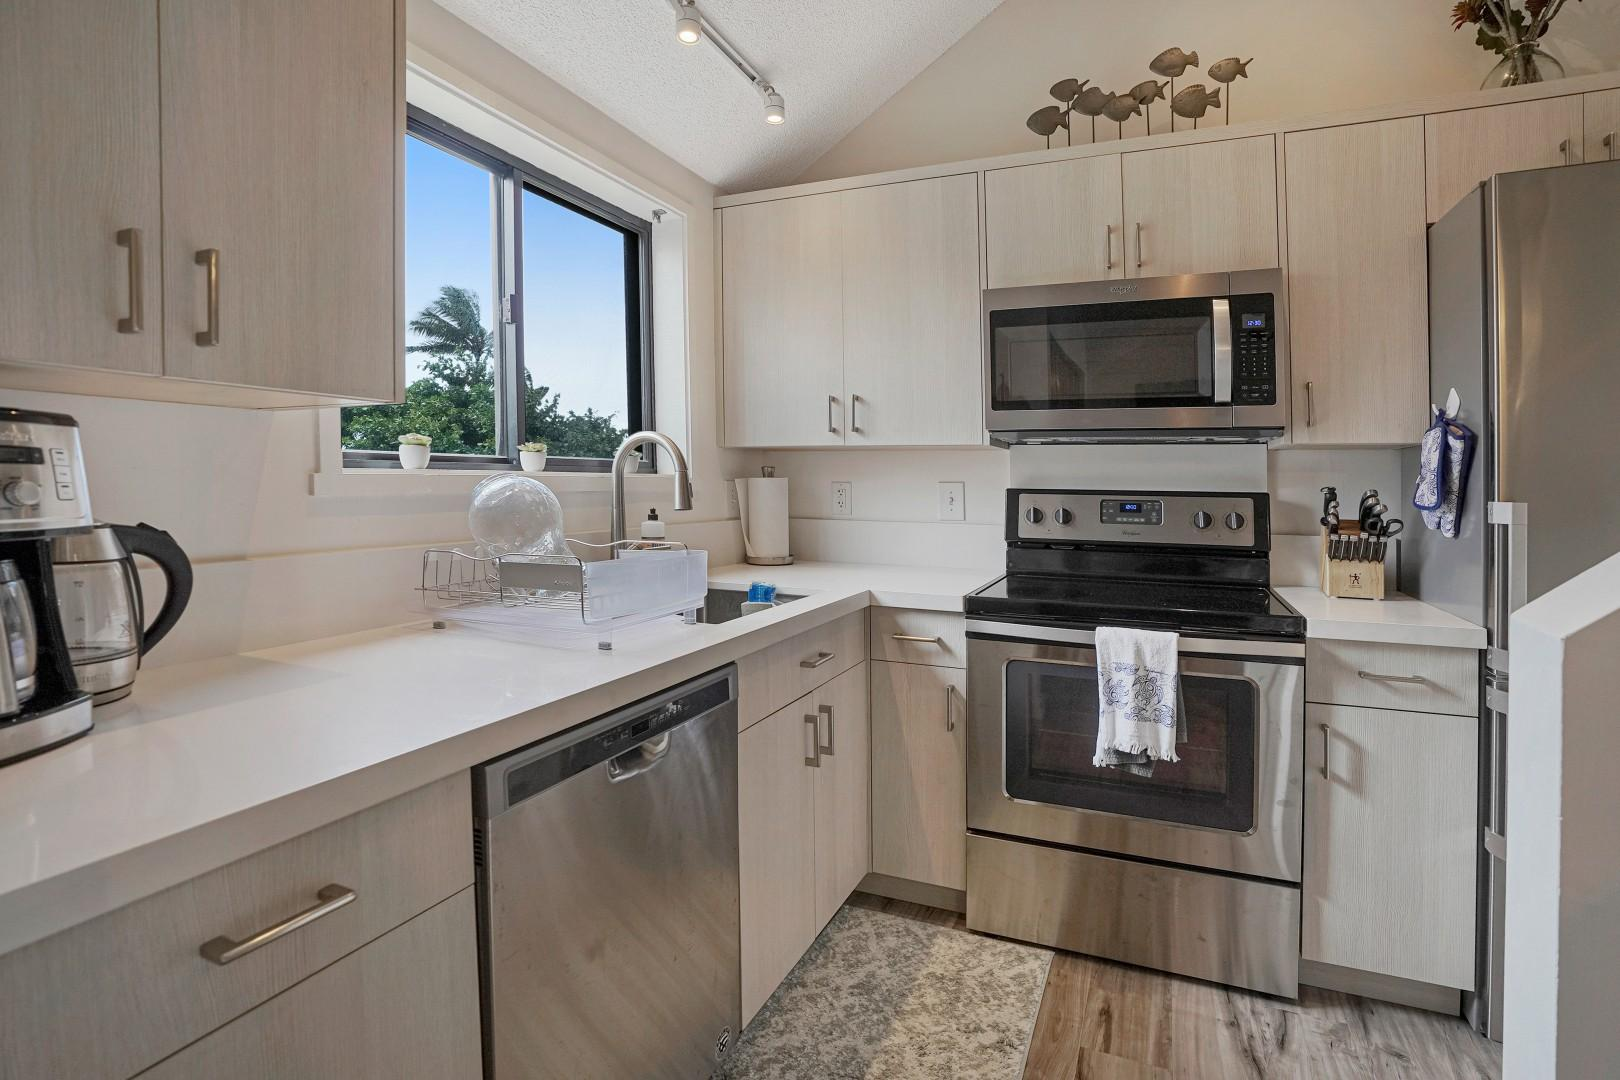 The updated kitchen has stainless steel appliances